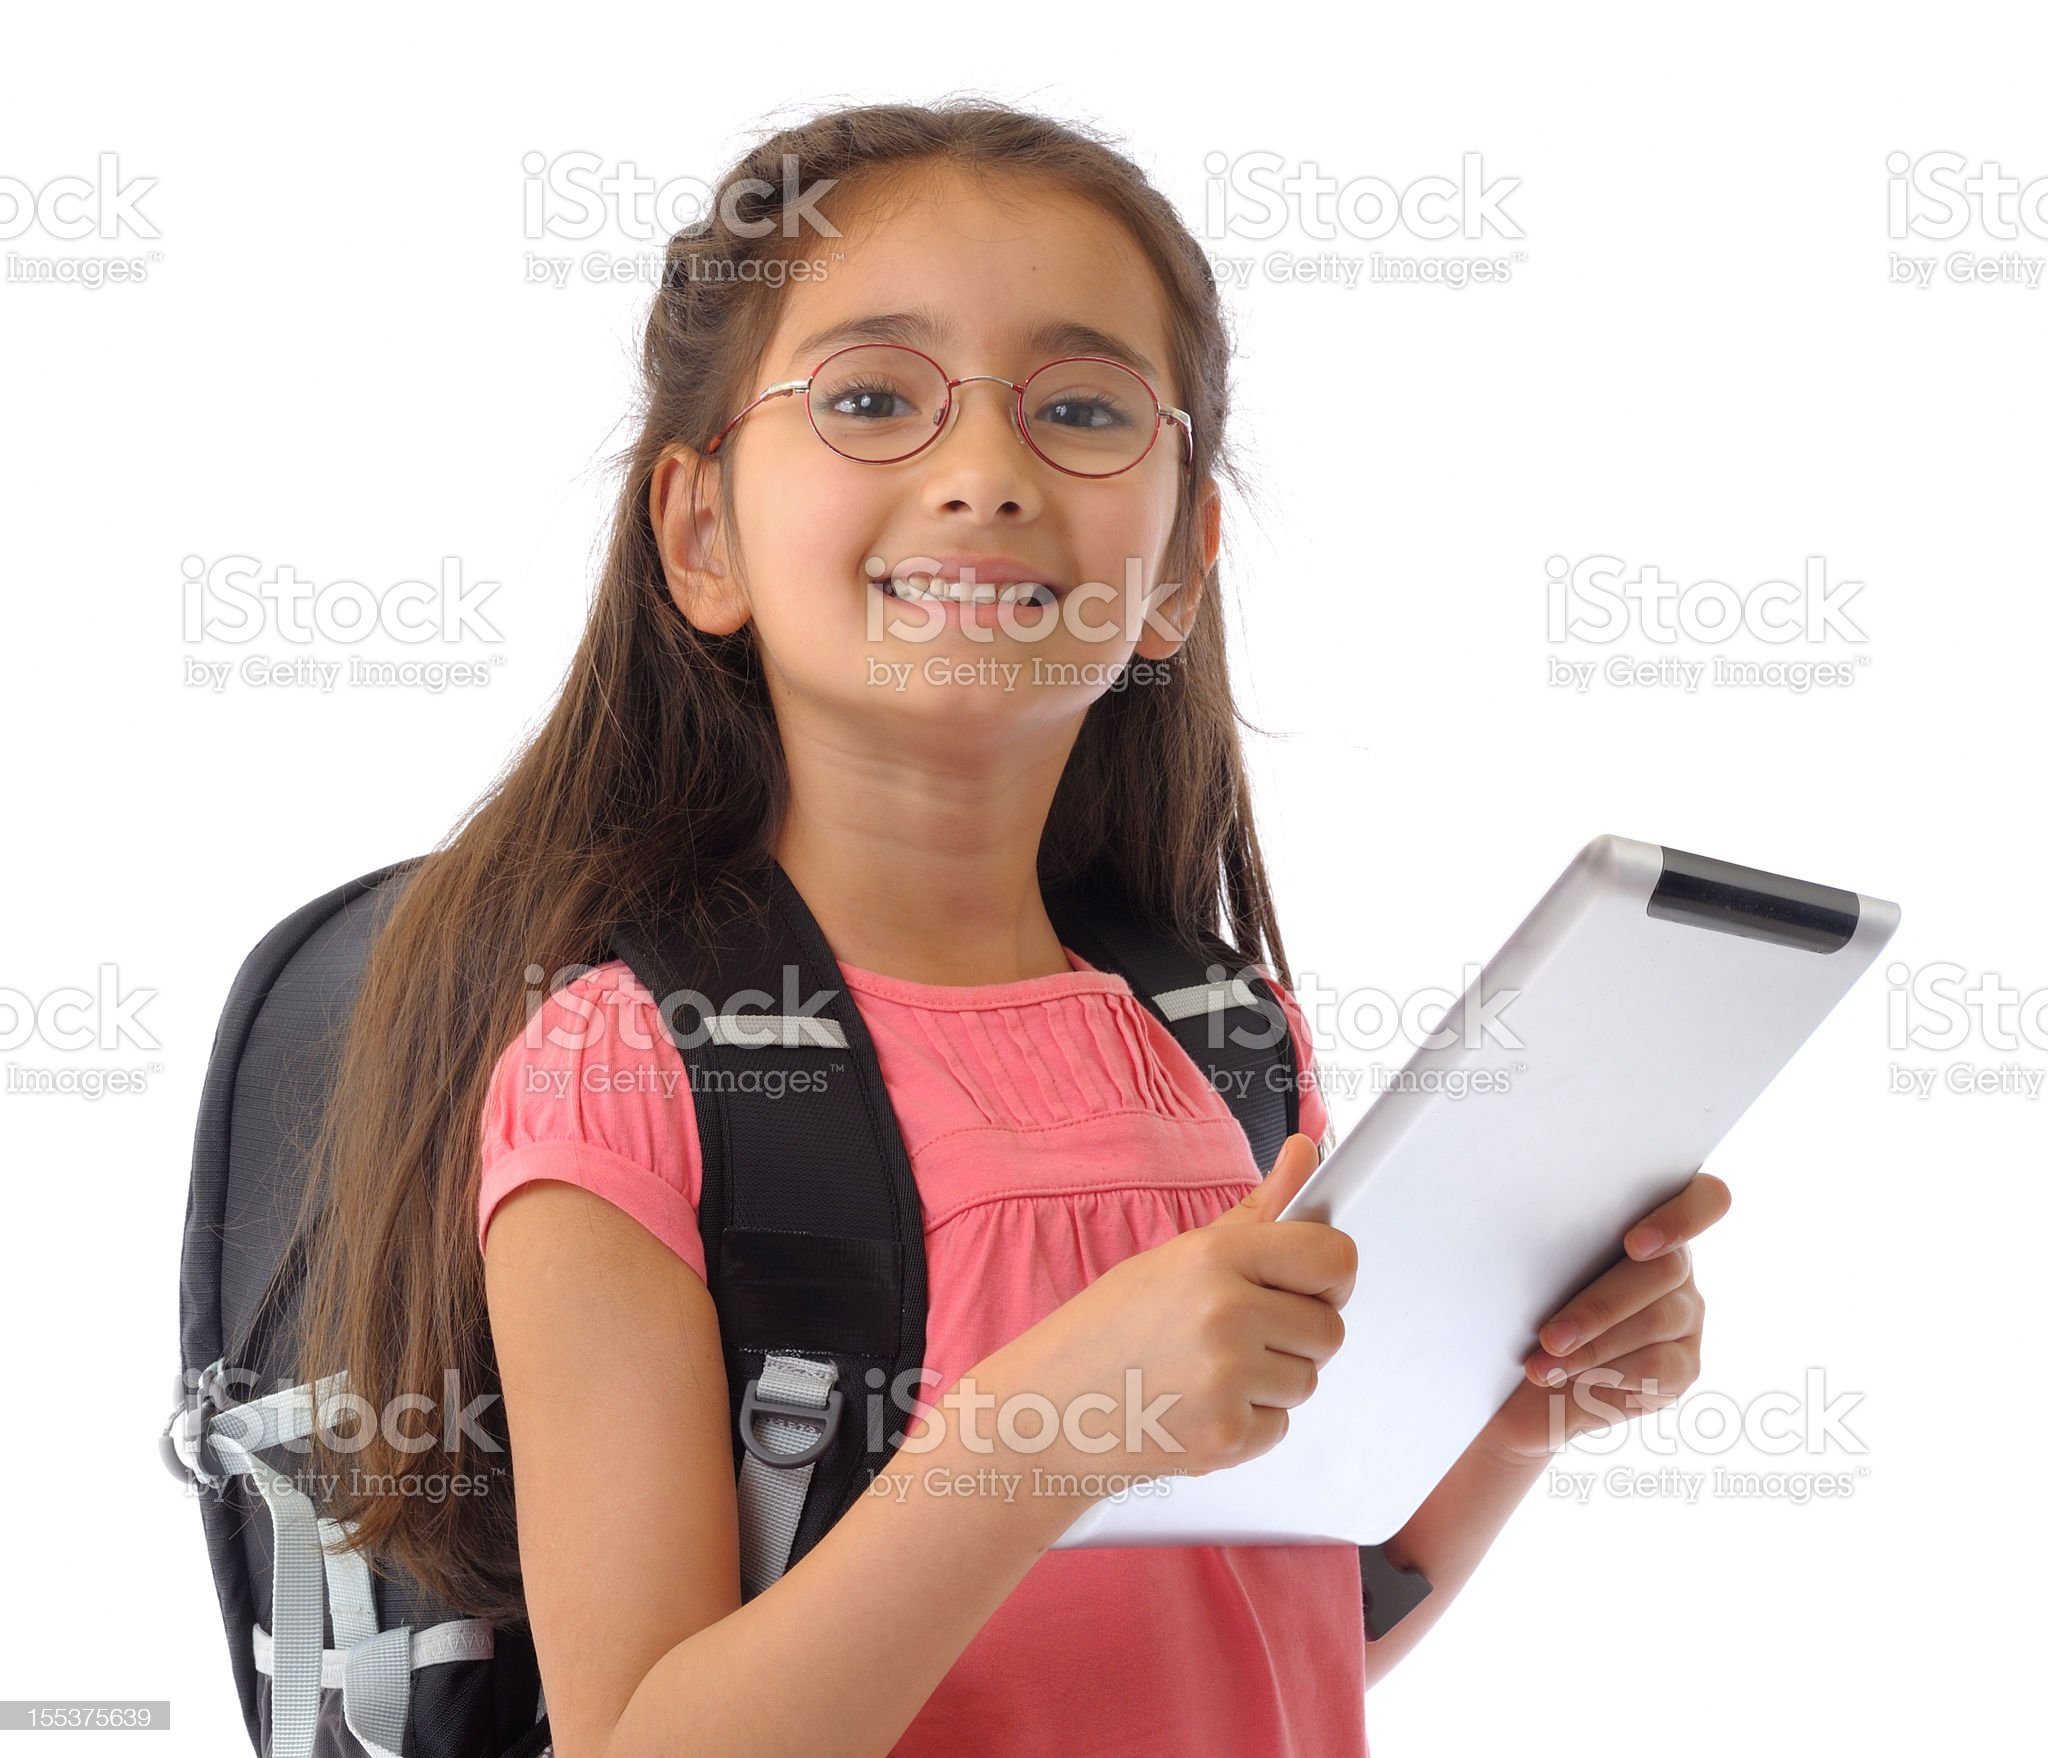 School girl with tablet pc royalty-free stock photo